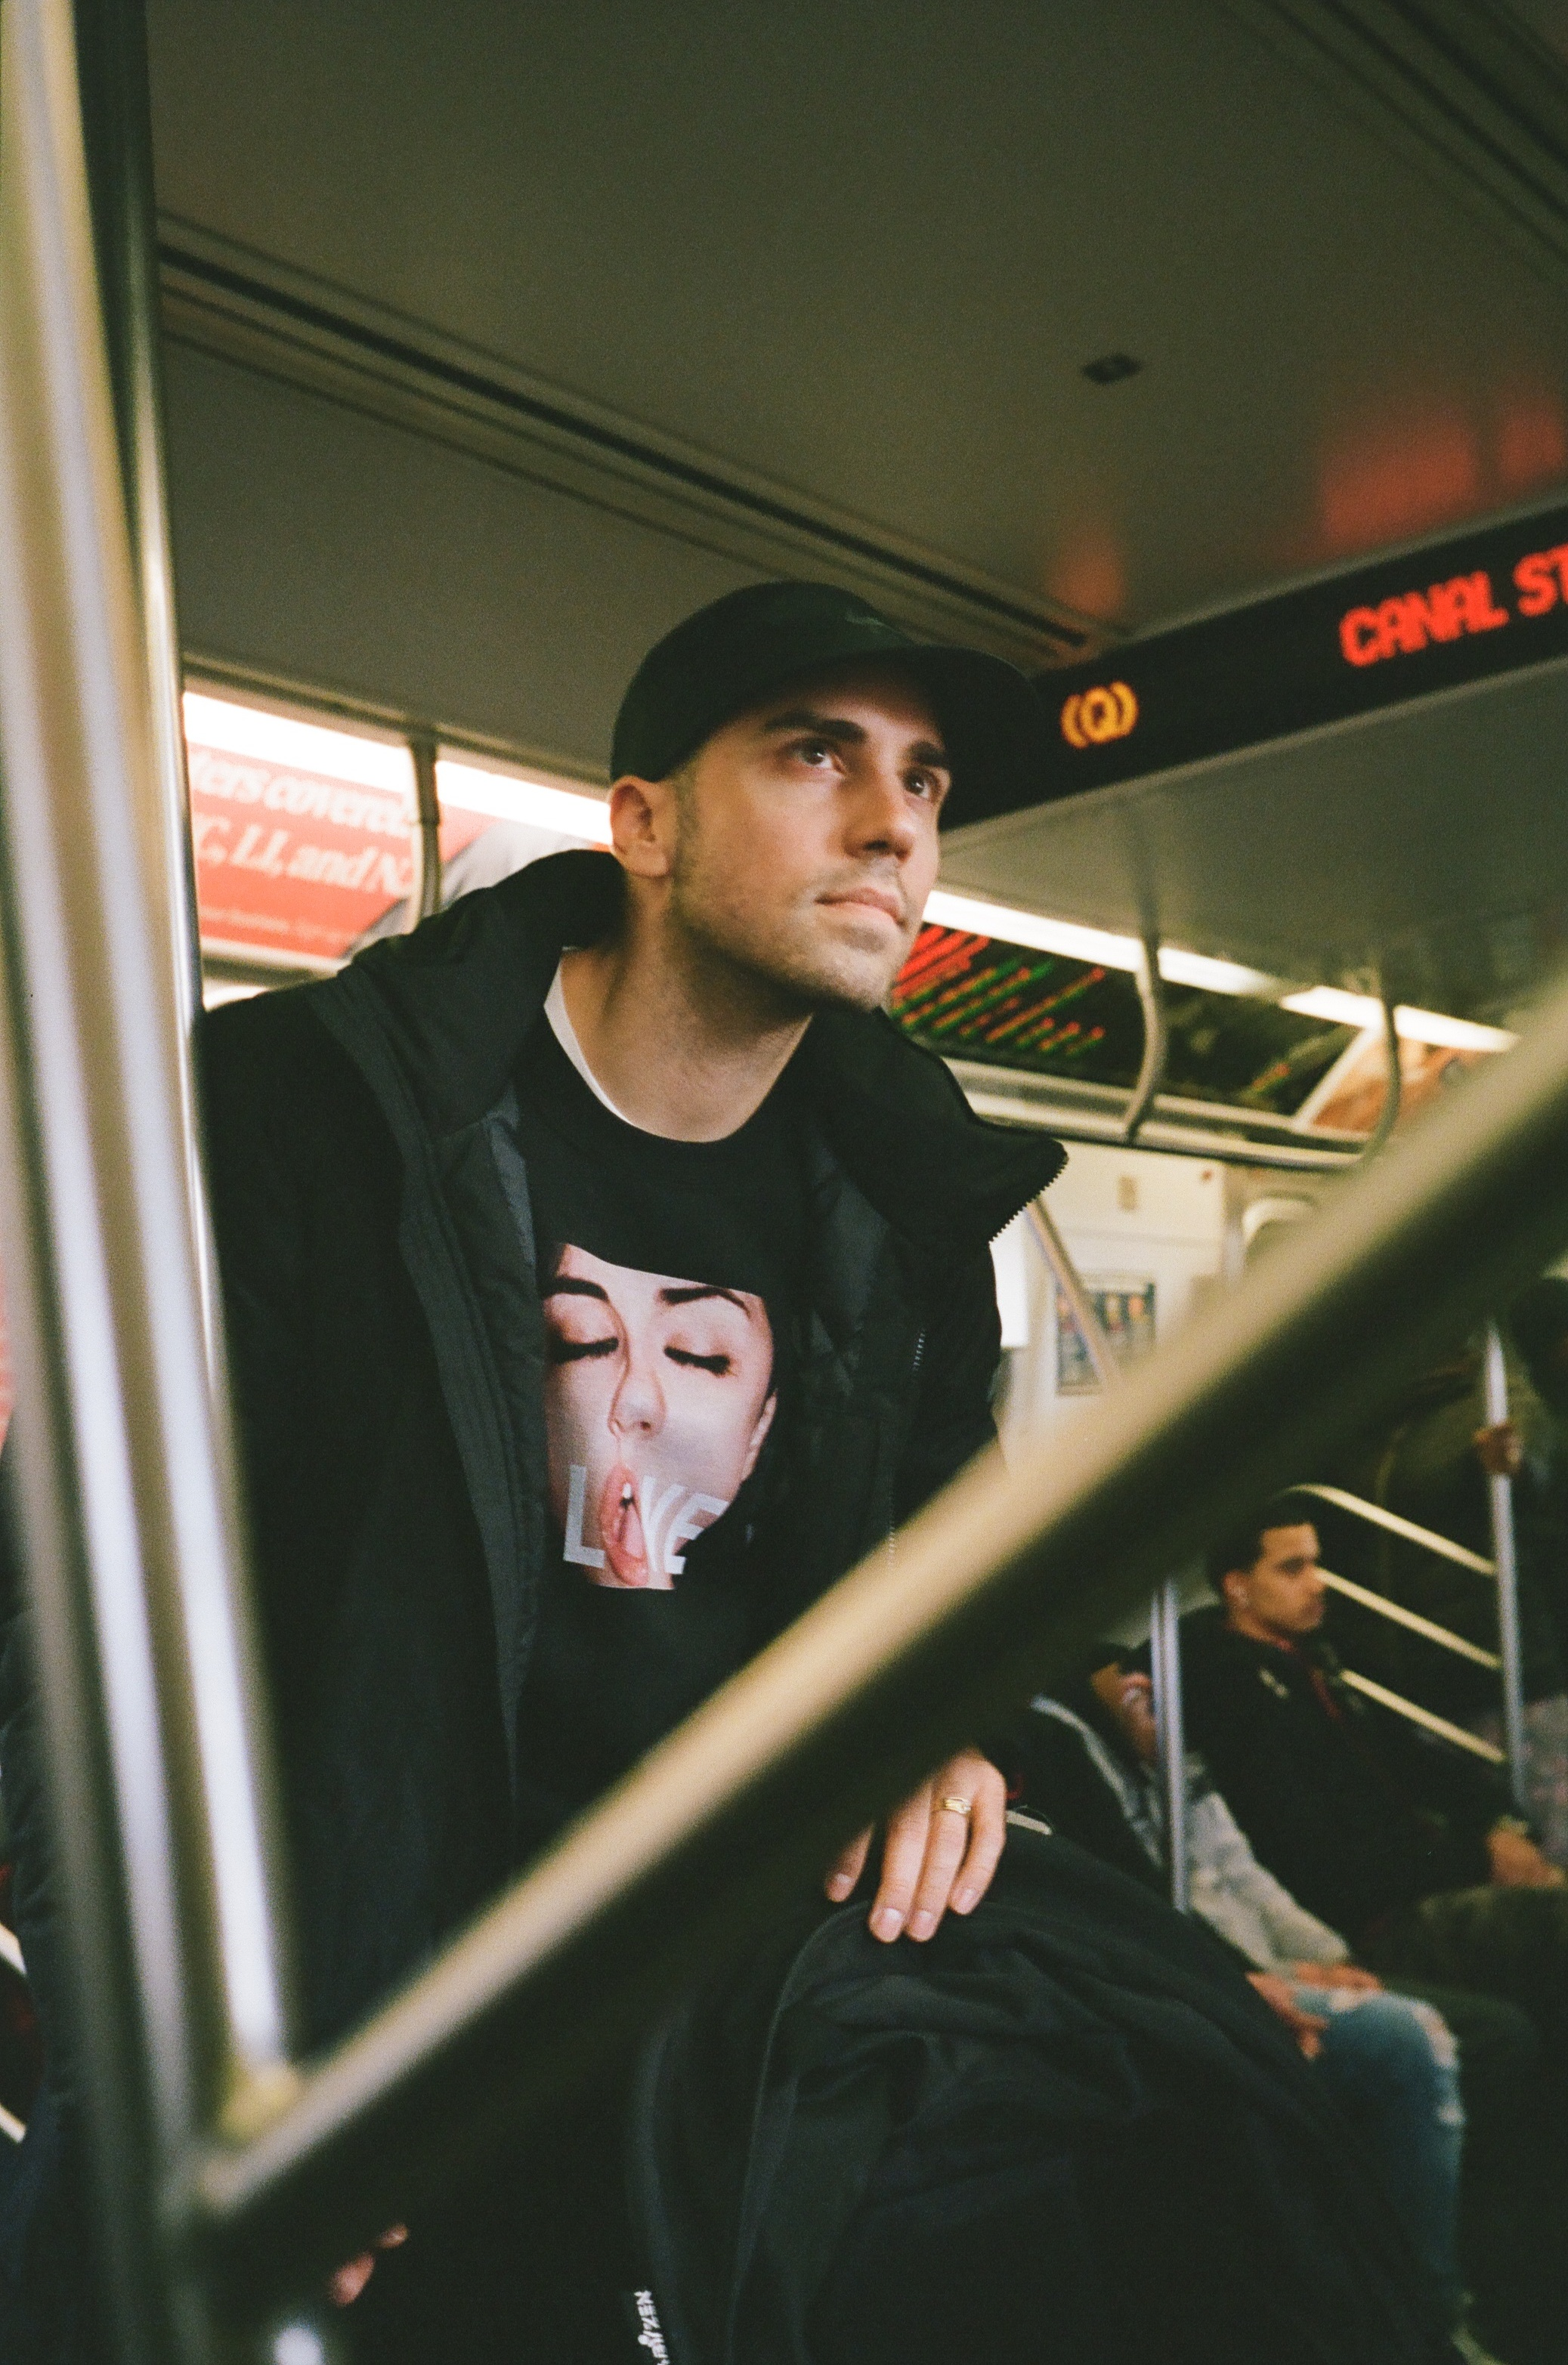 brooklyn-film-subway-man-photography